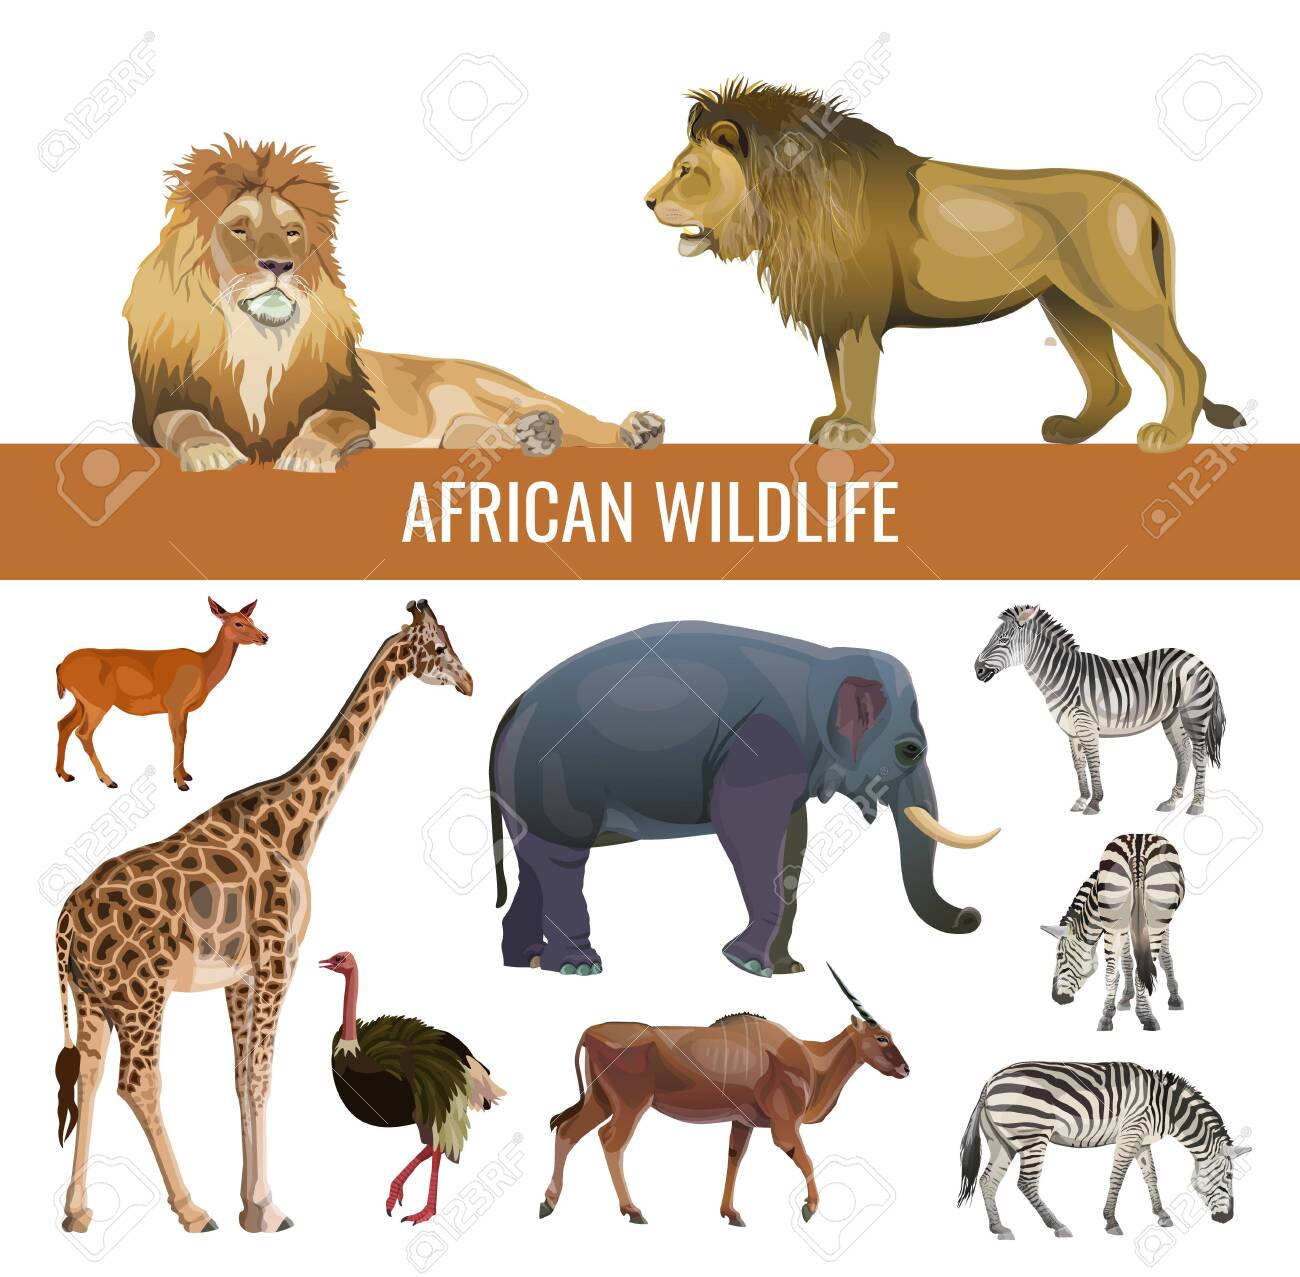 African wildlife: lions, zebras, antelopes, elephant, giraffe and ostrich. Vector illustration isolated on white background - 132473671